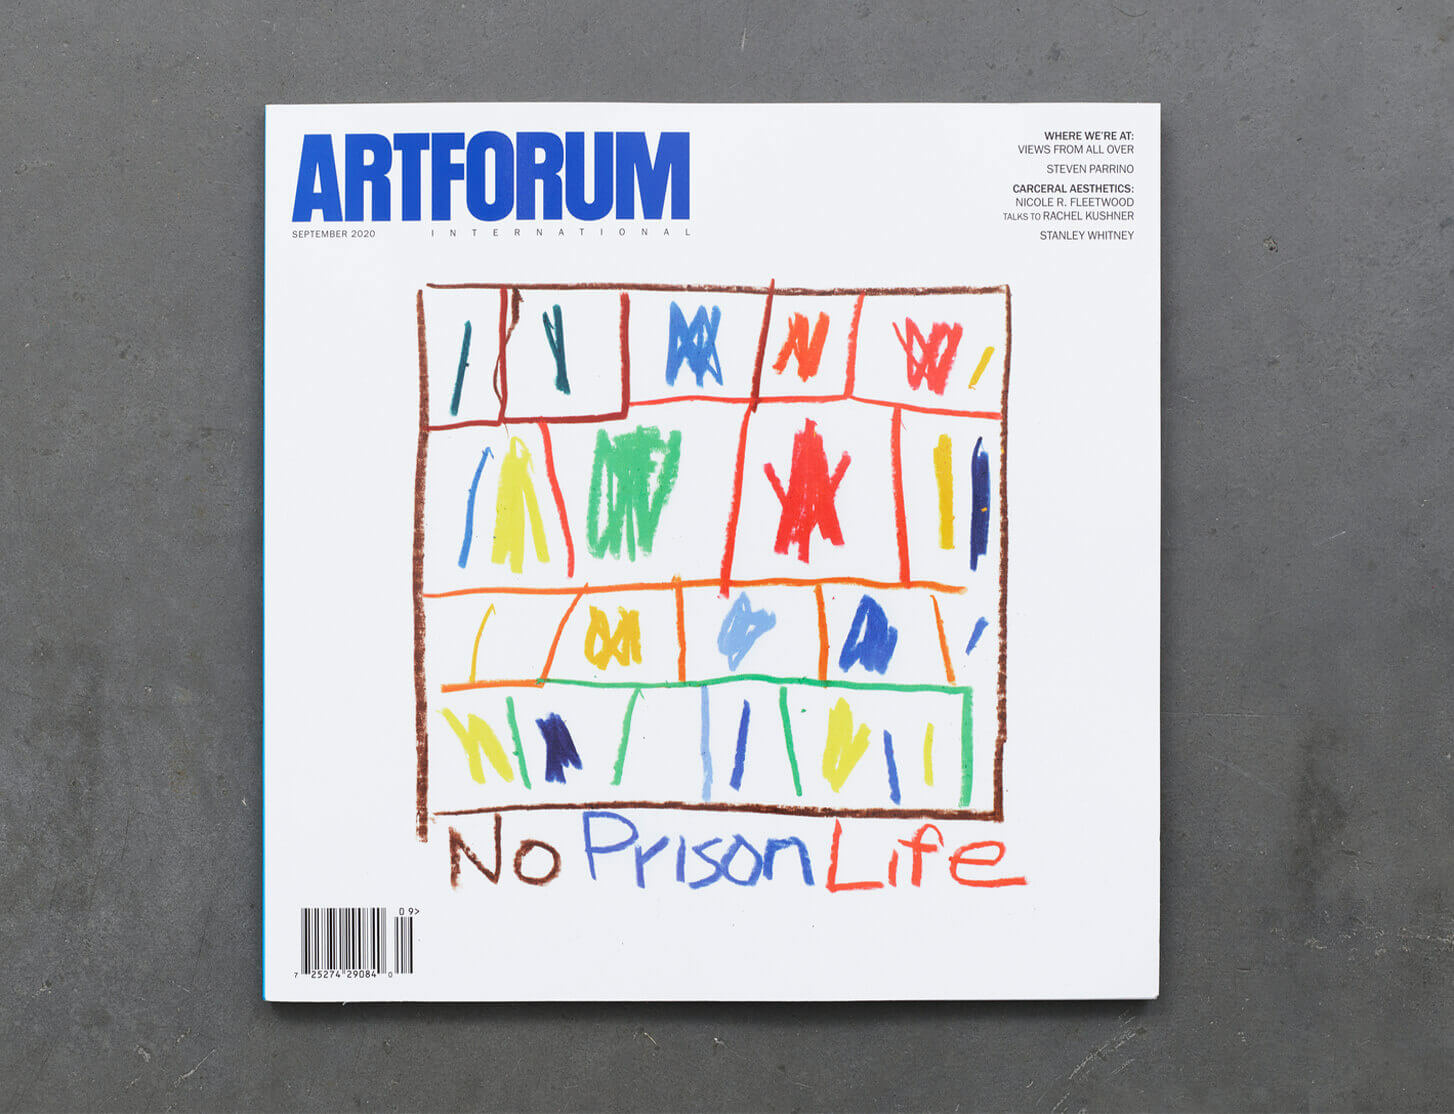 Stanley Whitney feature on the cover of Artforum's September Issue